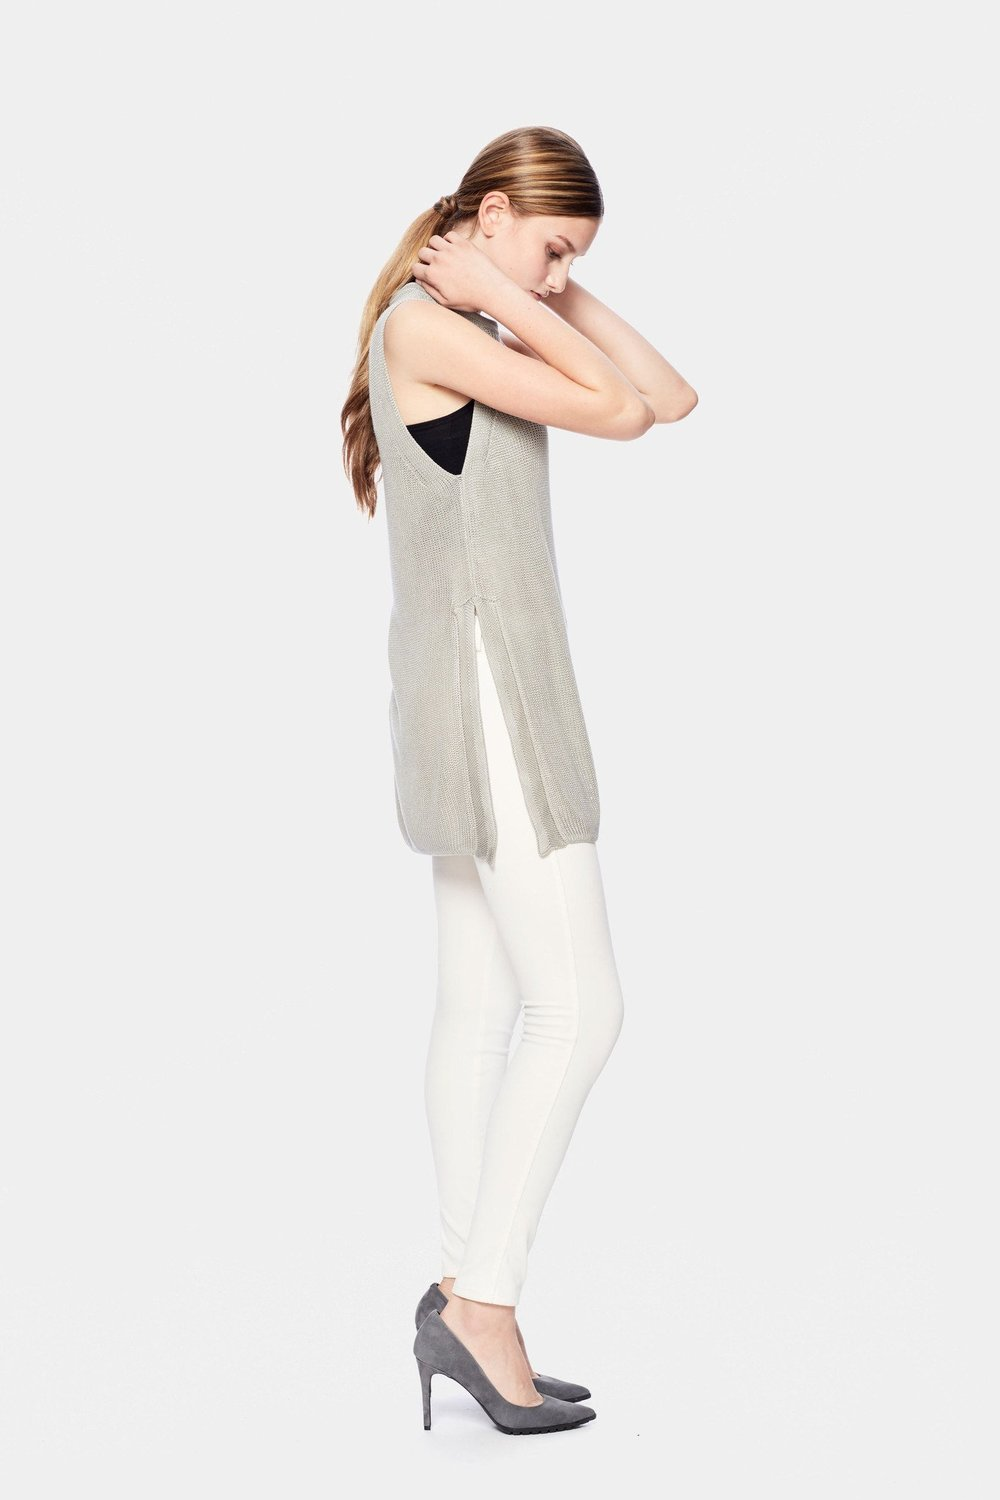 Munin Sleeveless Sweater - $55